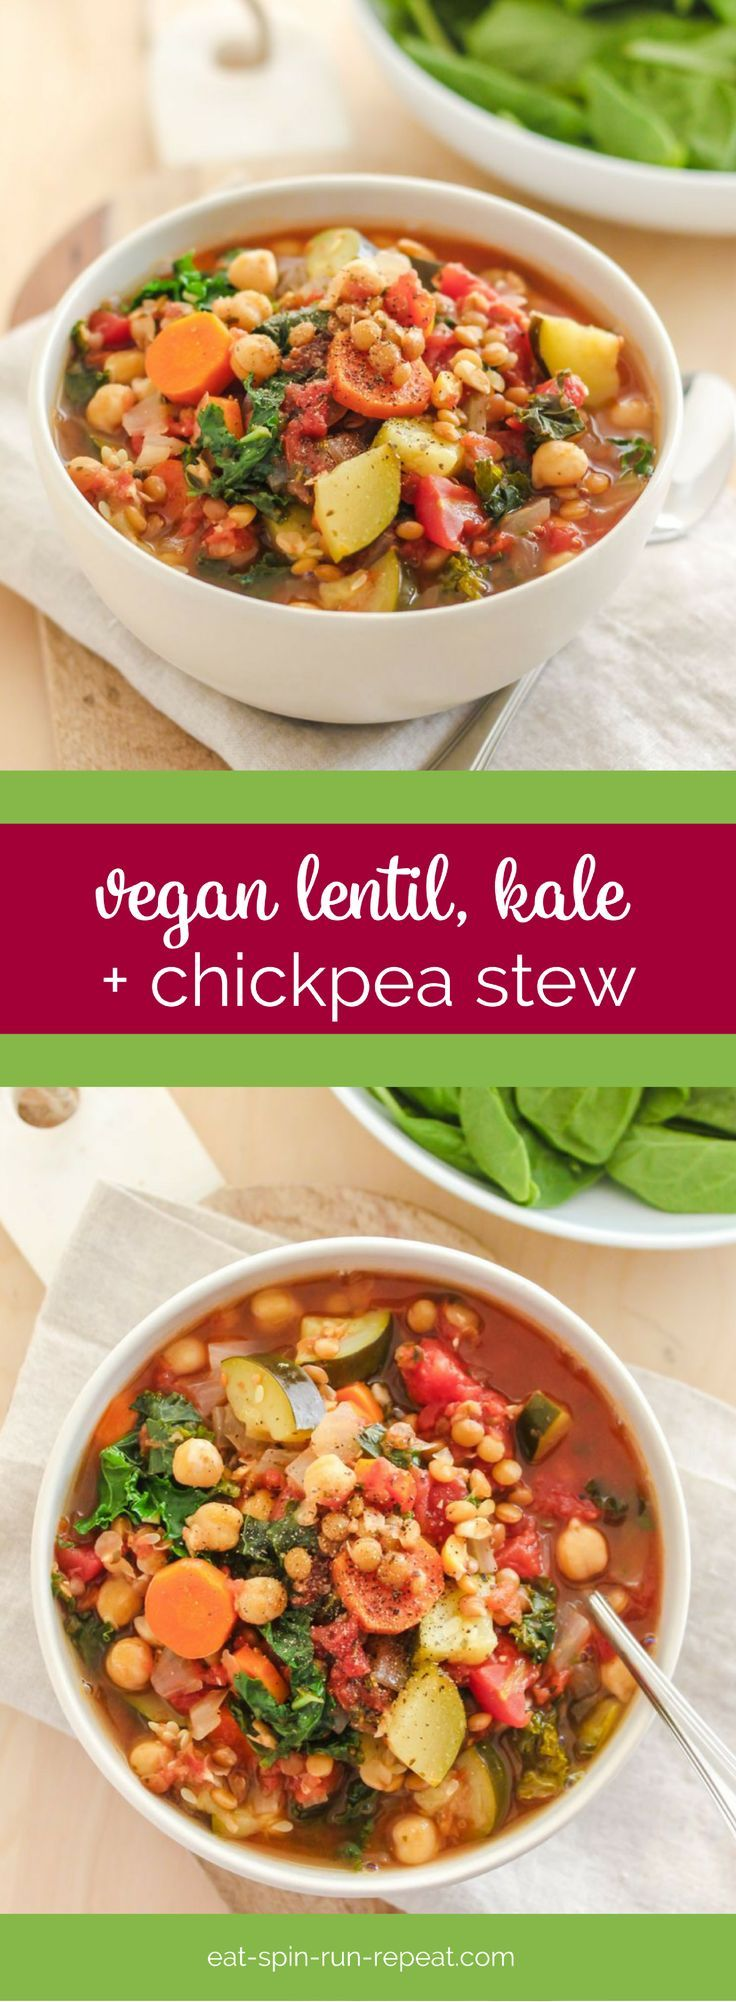 Vegan Lentil, Kale and Chickpea Stew - a great lunch or dinner recipe in the colder months that can be made in big batches and frozen, or enjoyed straight out of the pot! Gluten free and high in protein.